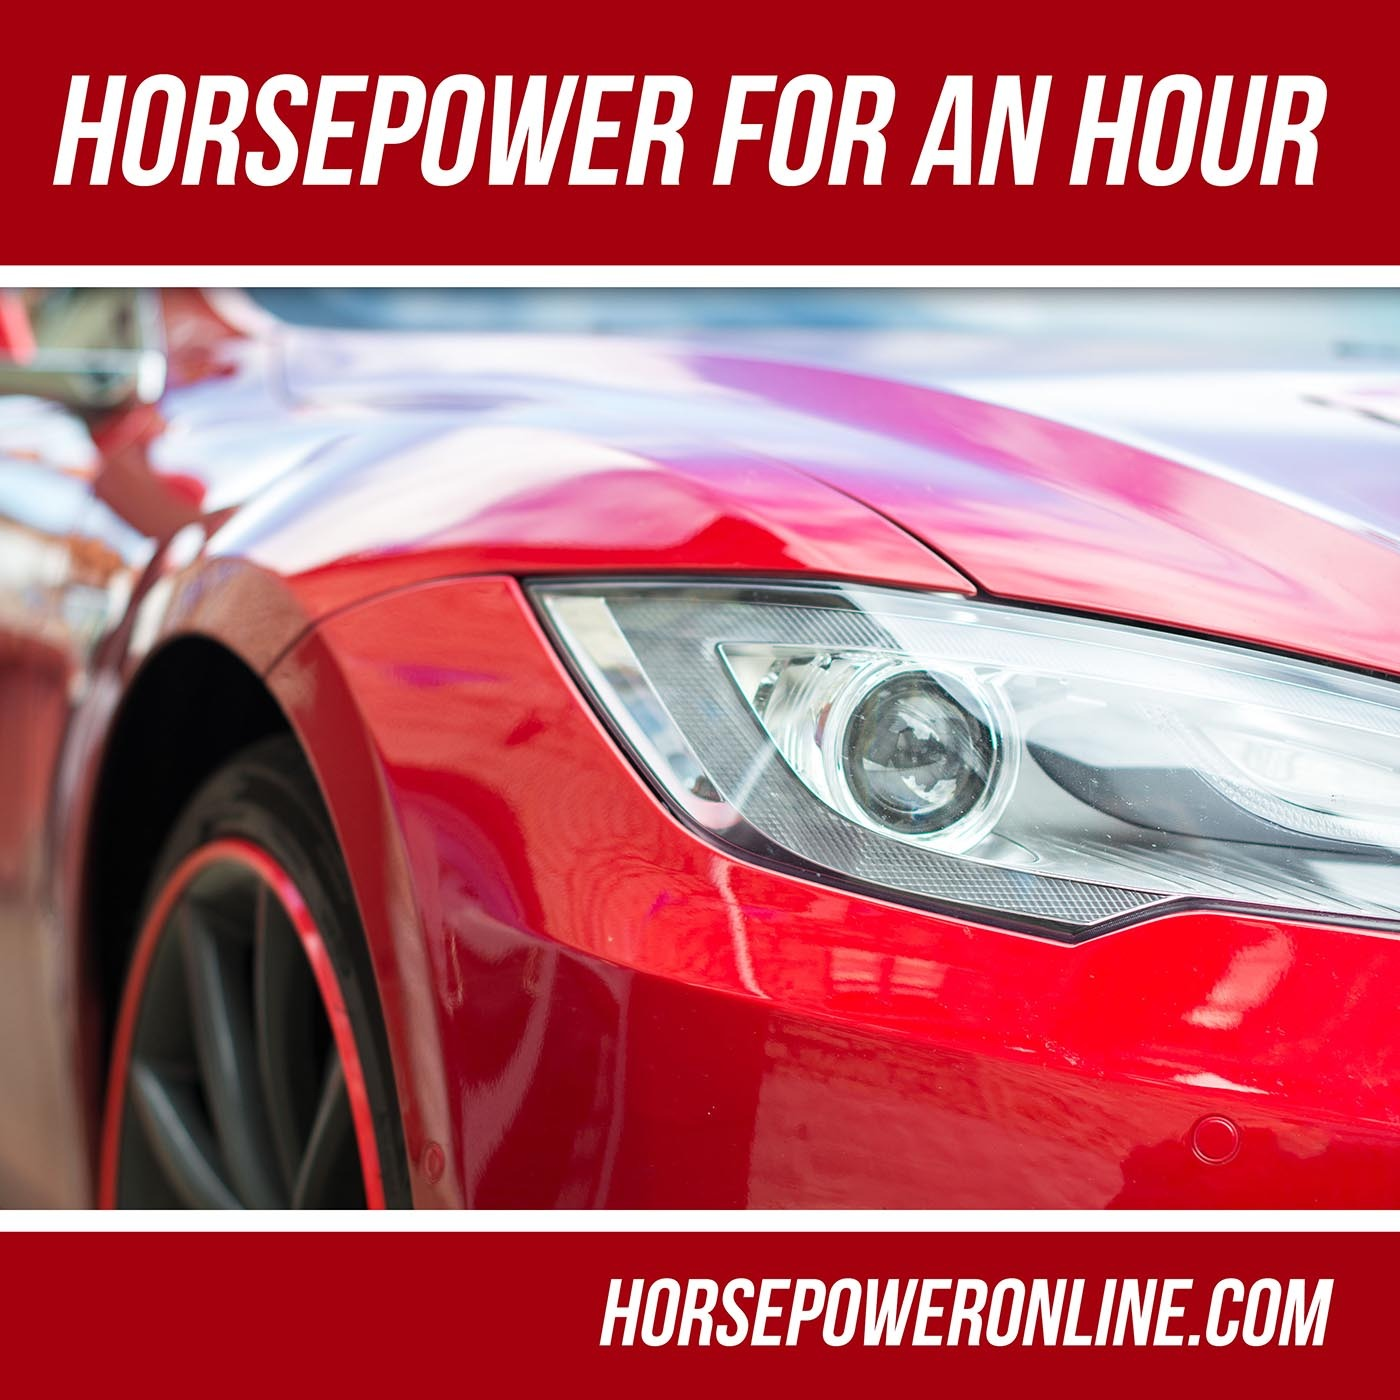 Horsepower for an Hour